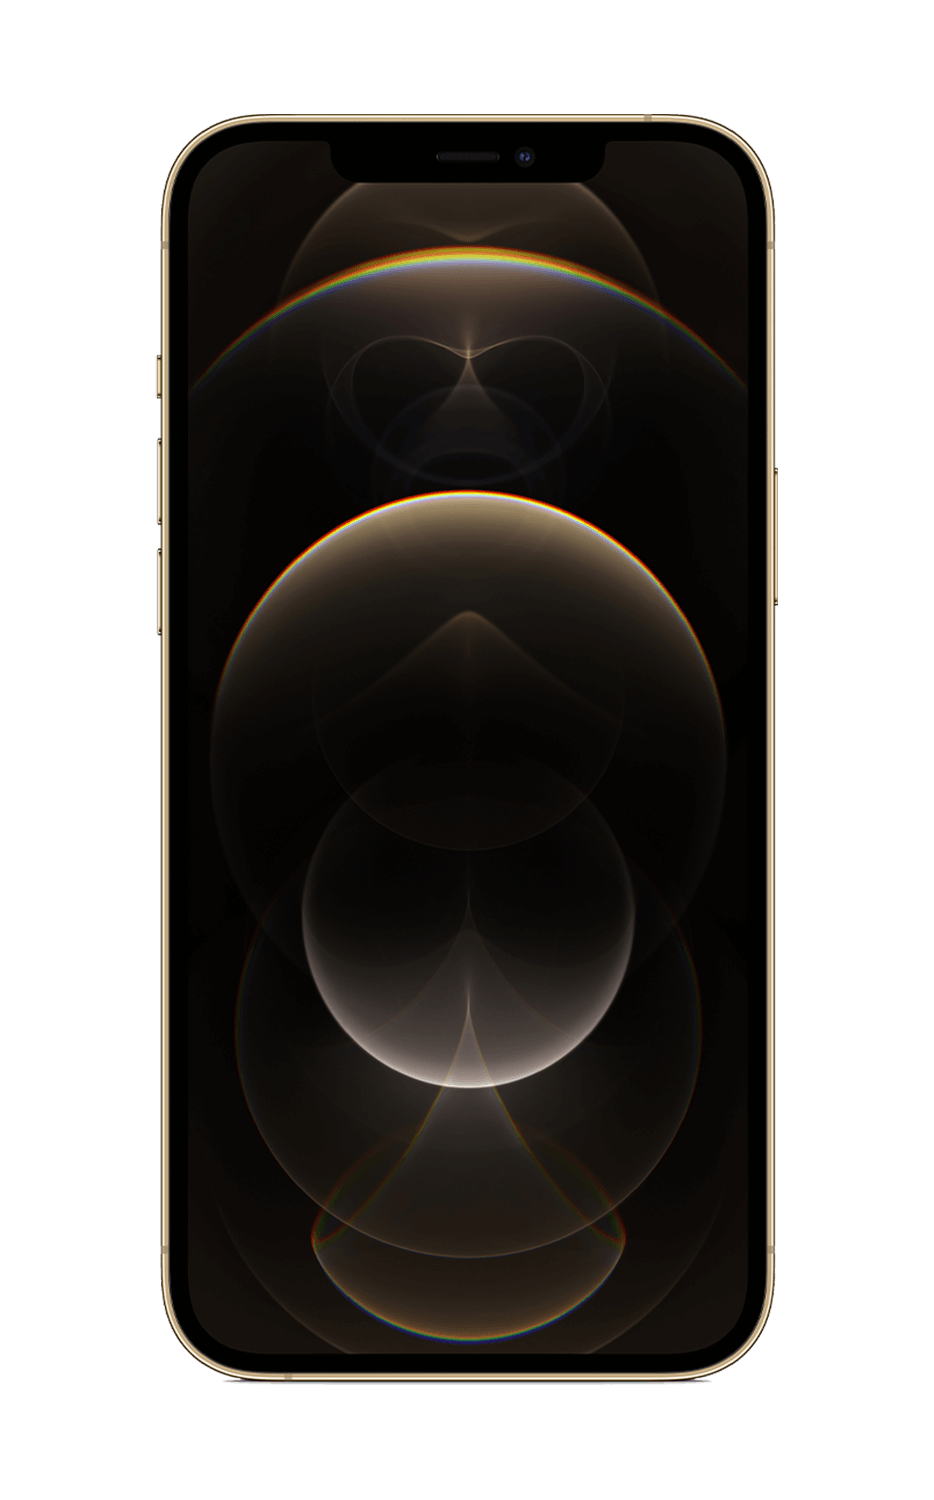 Rear View iPhone 12 Pro Max Gold